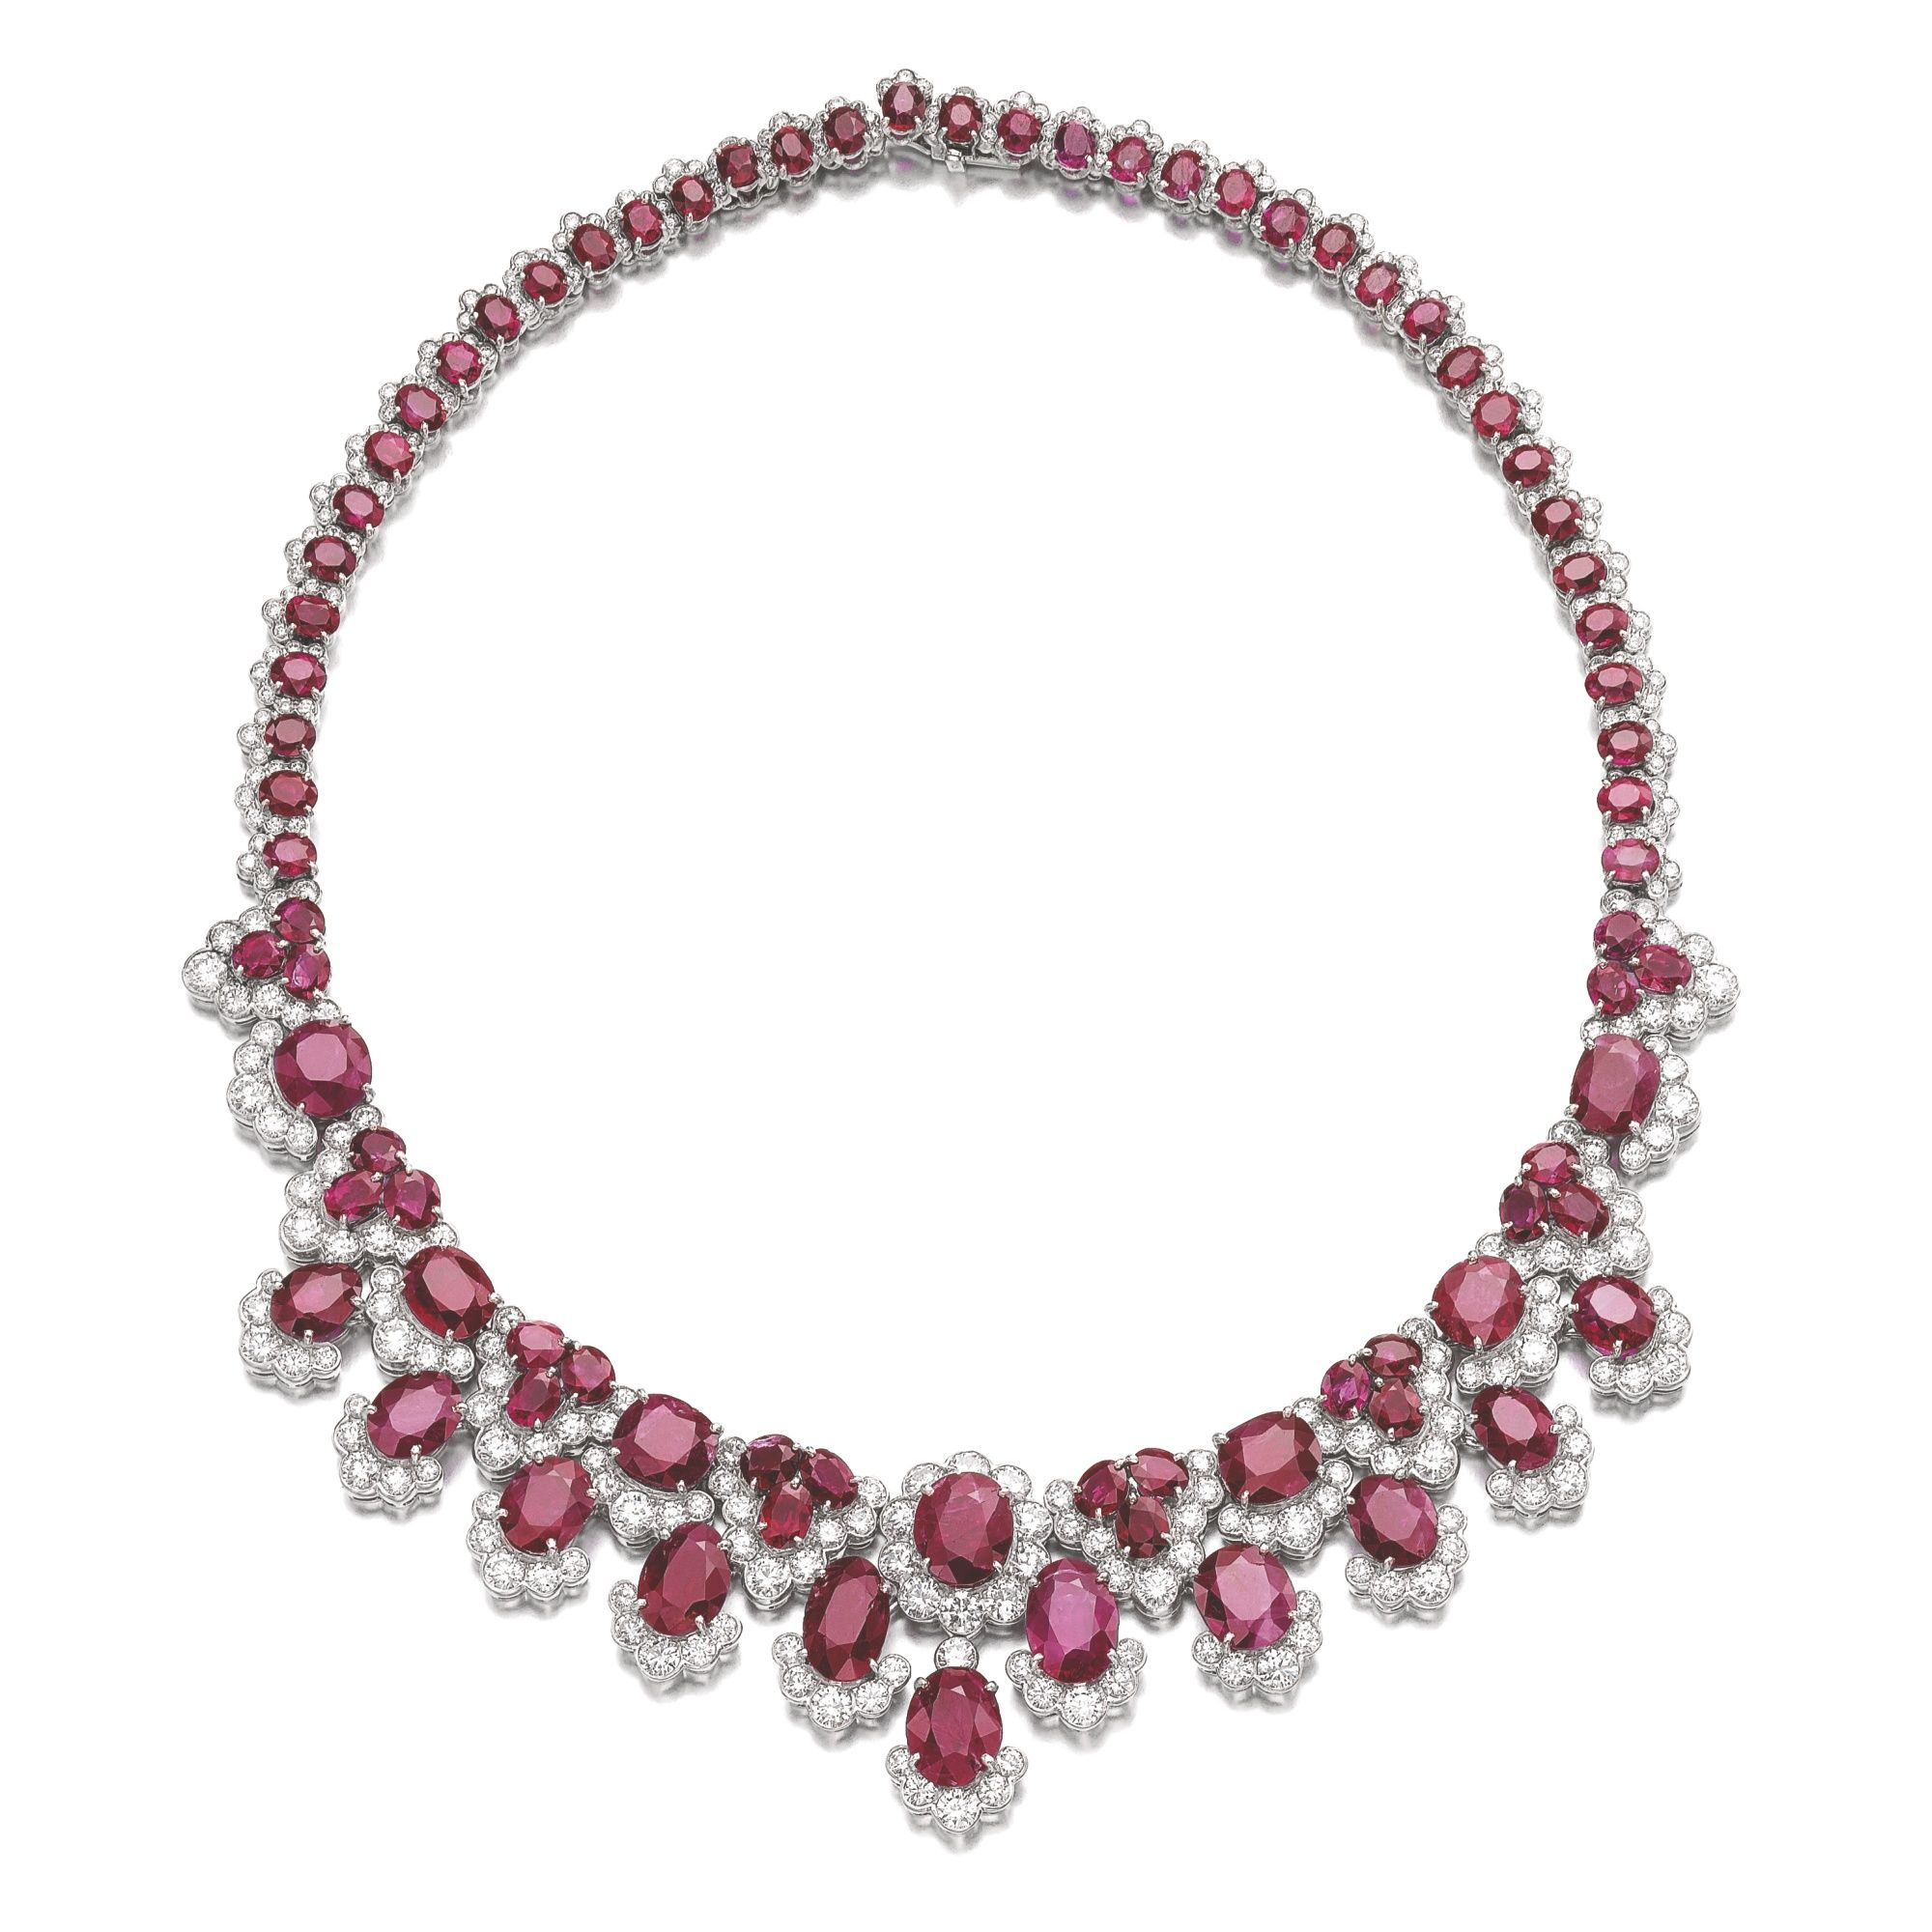 Ruby and diamond necklace bulgari circa designed as a